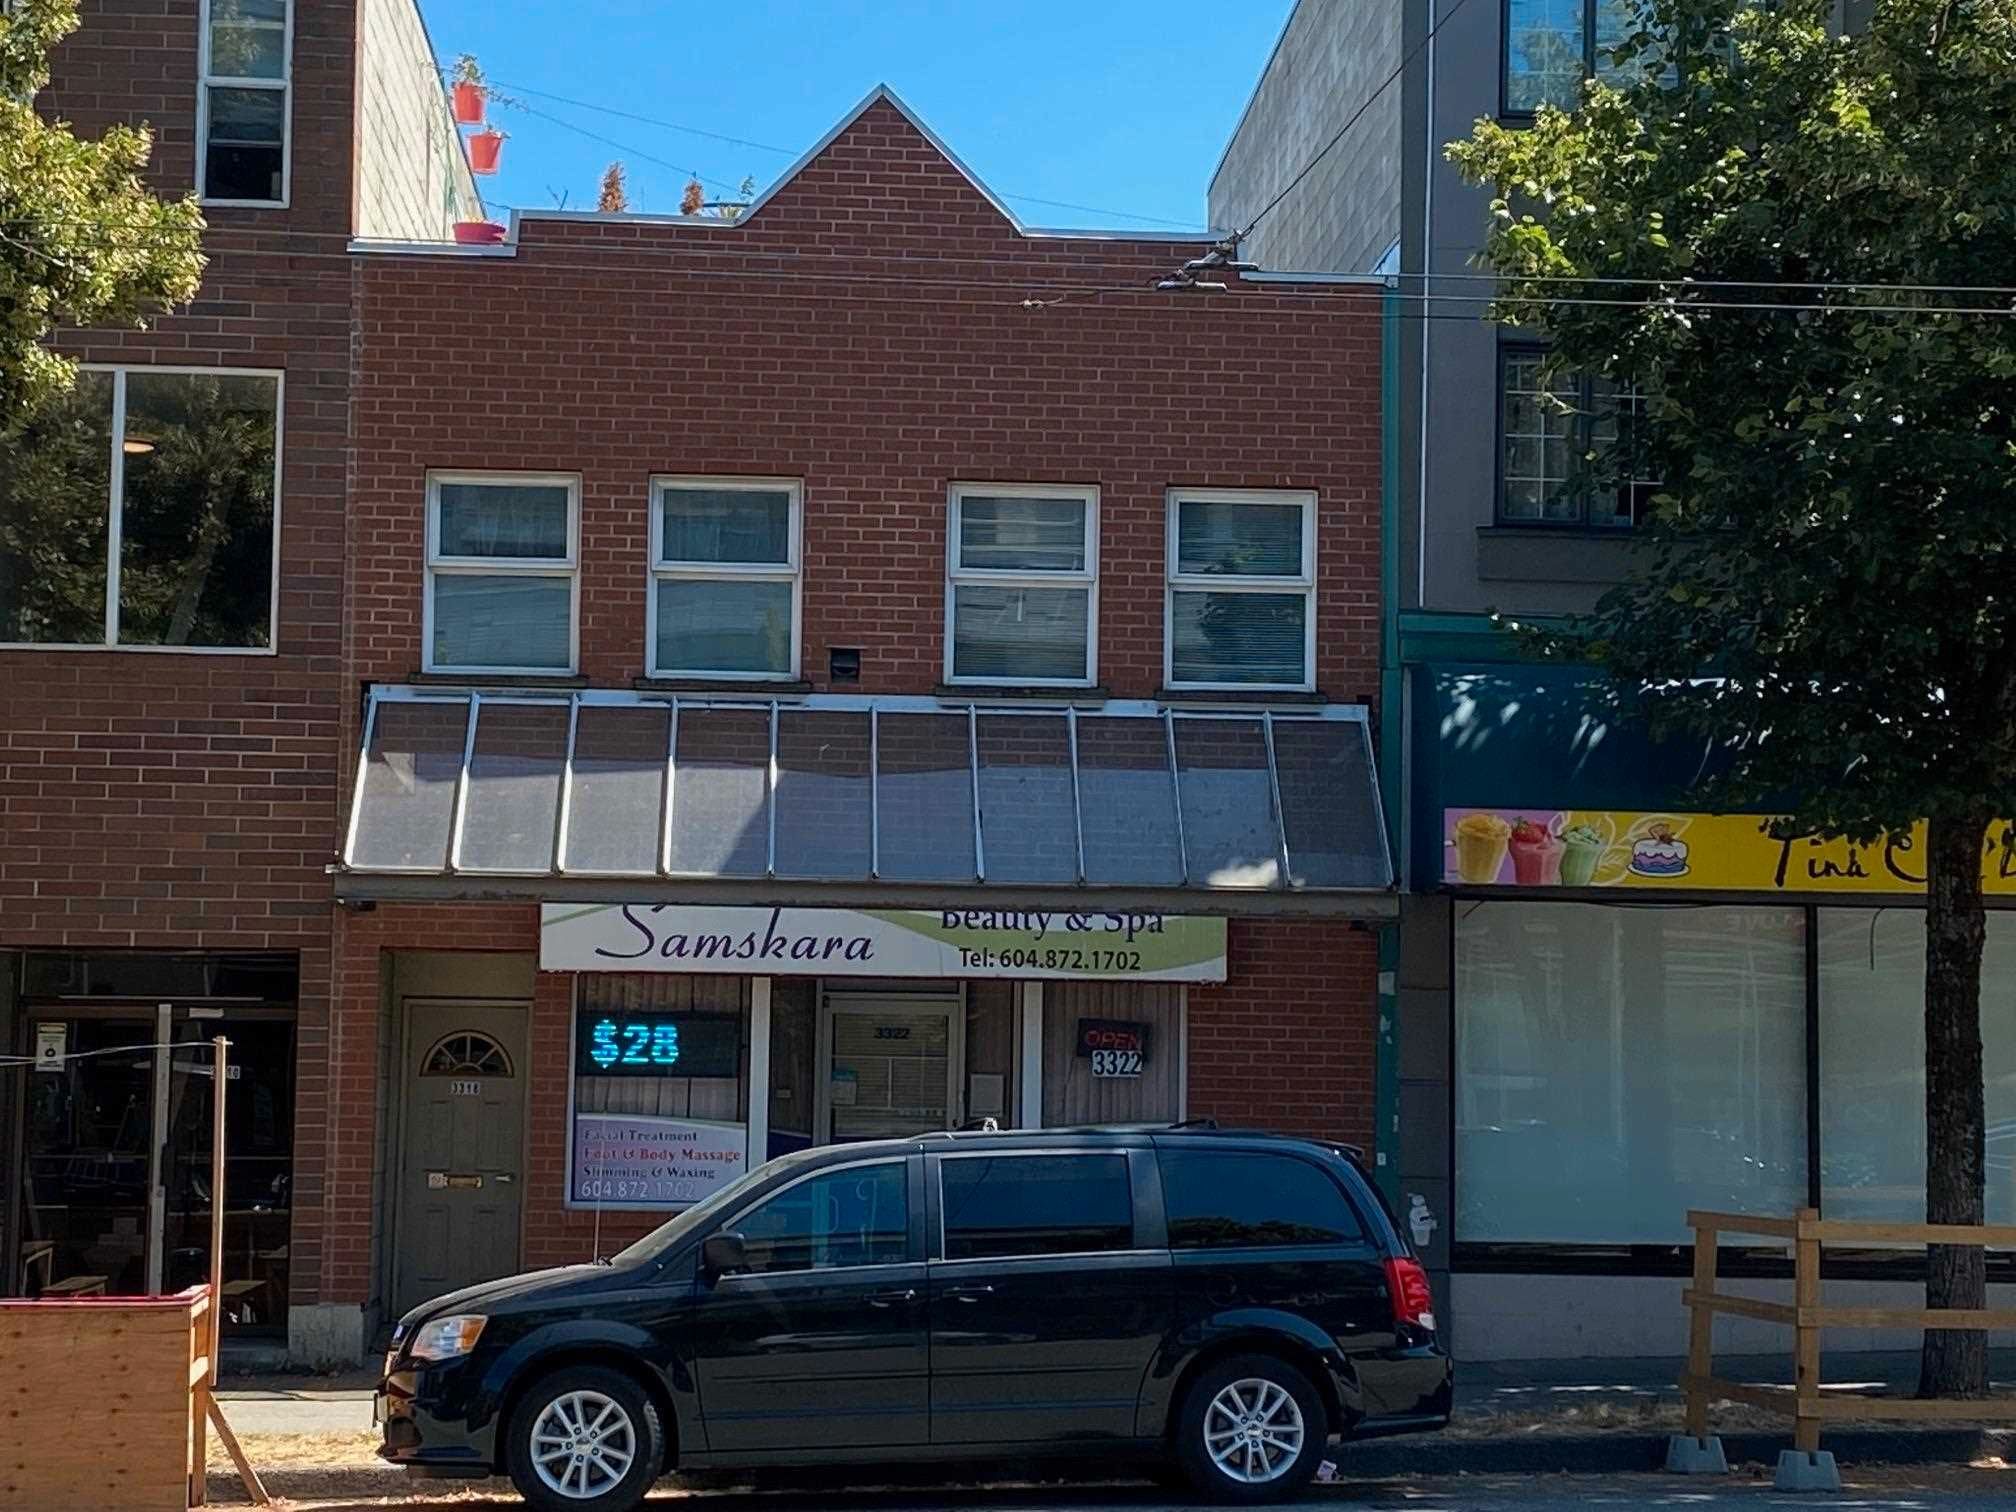 Main Photo: 3318 MAIN Street in Vancouver: Main Retail for sale (Vancouver East)  : MLS®# C8039570